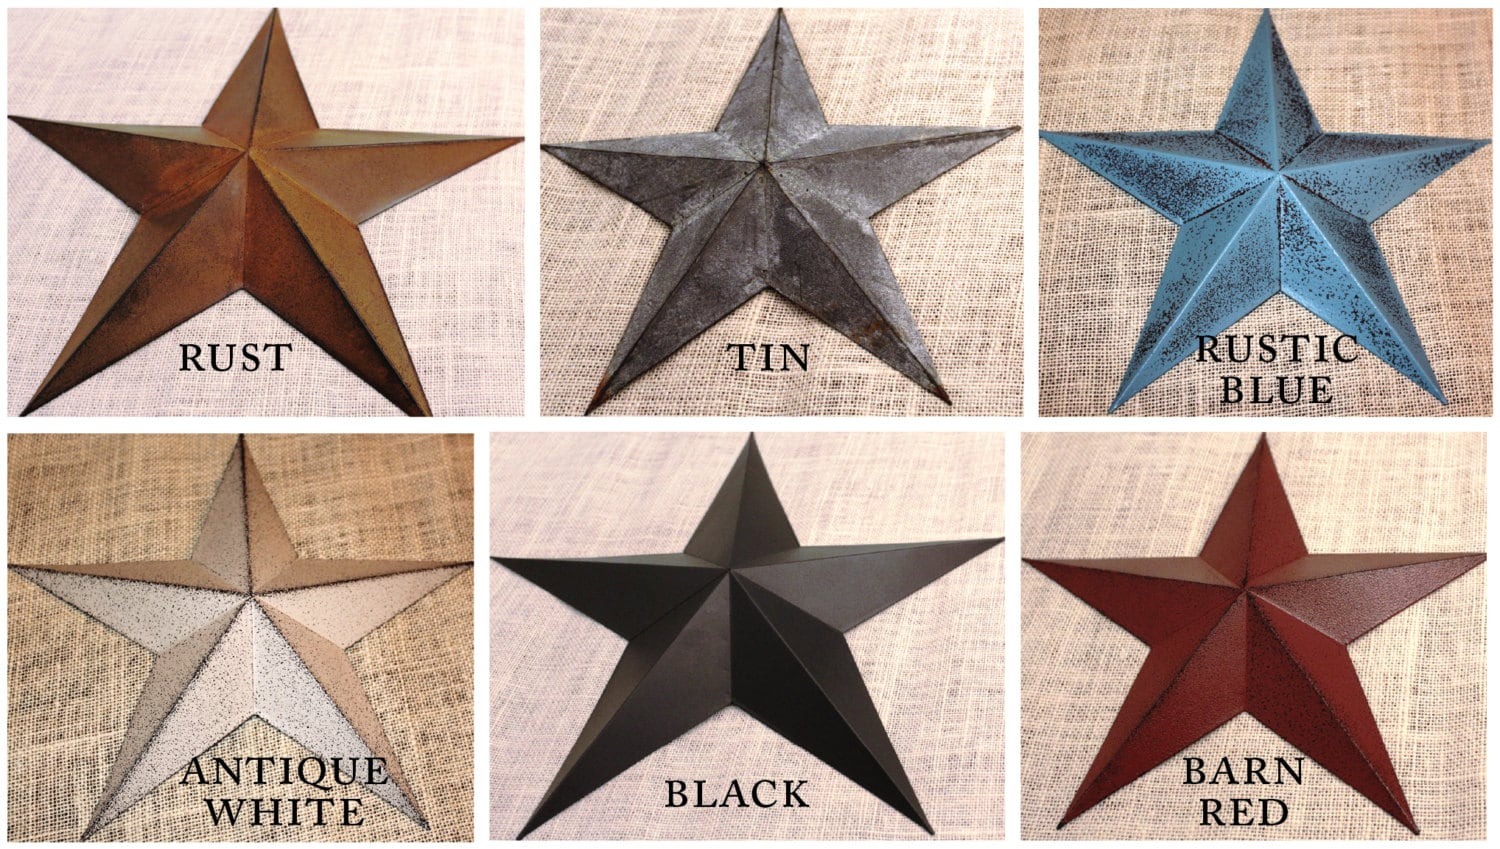 Star Wall Decor Ideas: 5 Metal Tin Barn Star Wall Decor